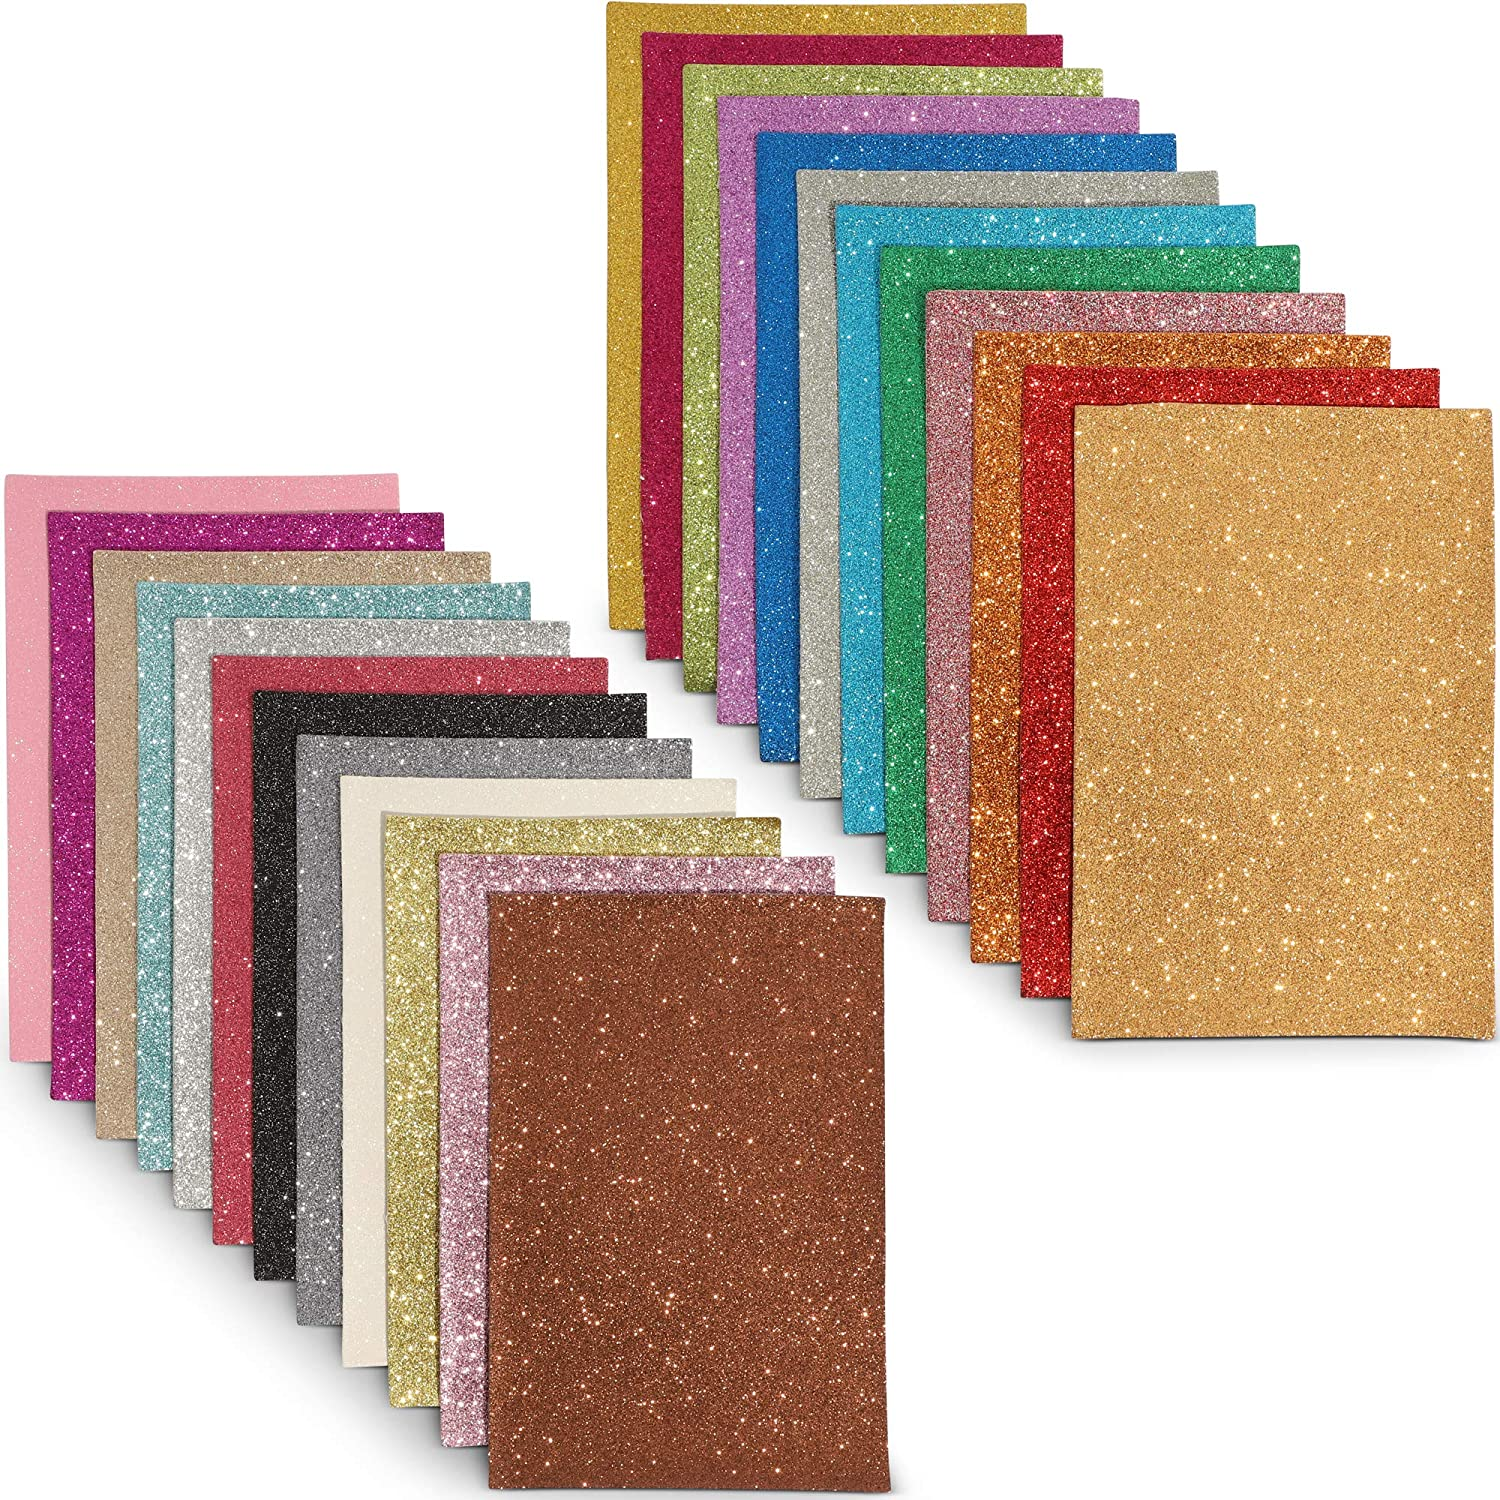 Glitter Fabric Sheets, Faux Leather (6 x 9 Inch, 24 Pack)